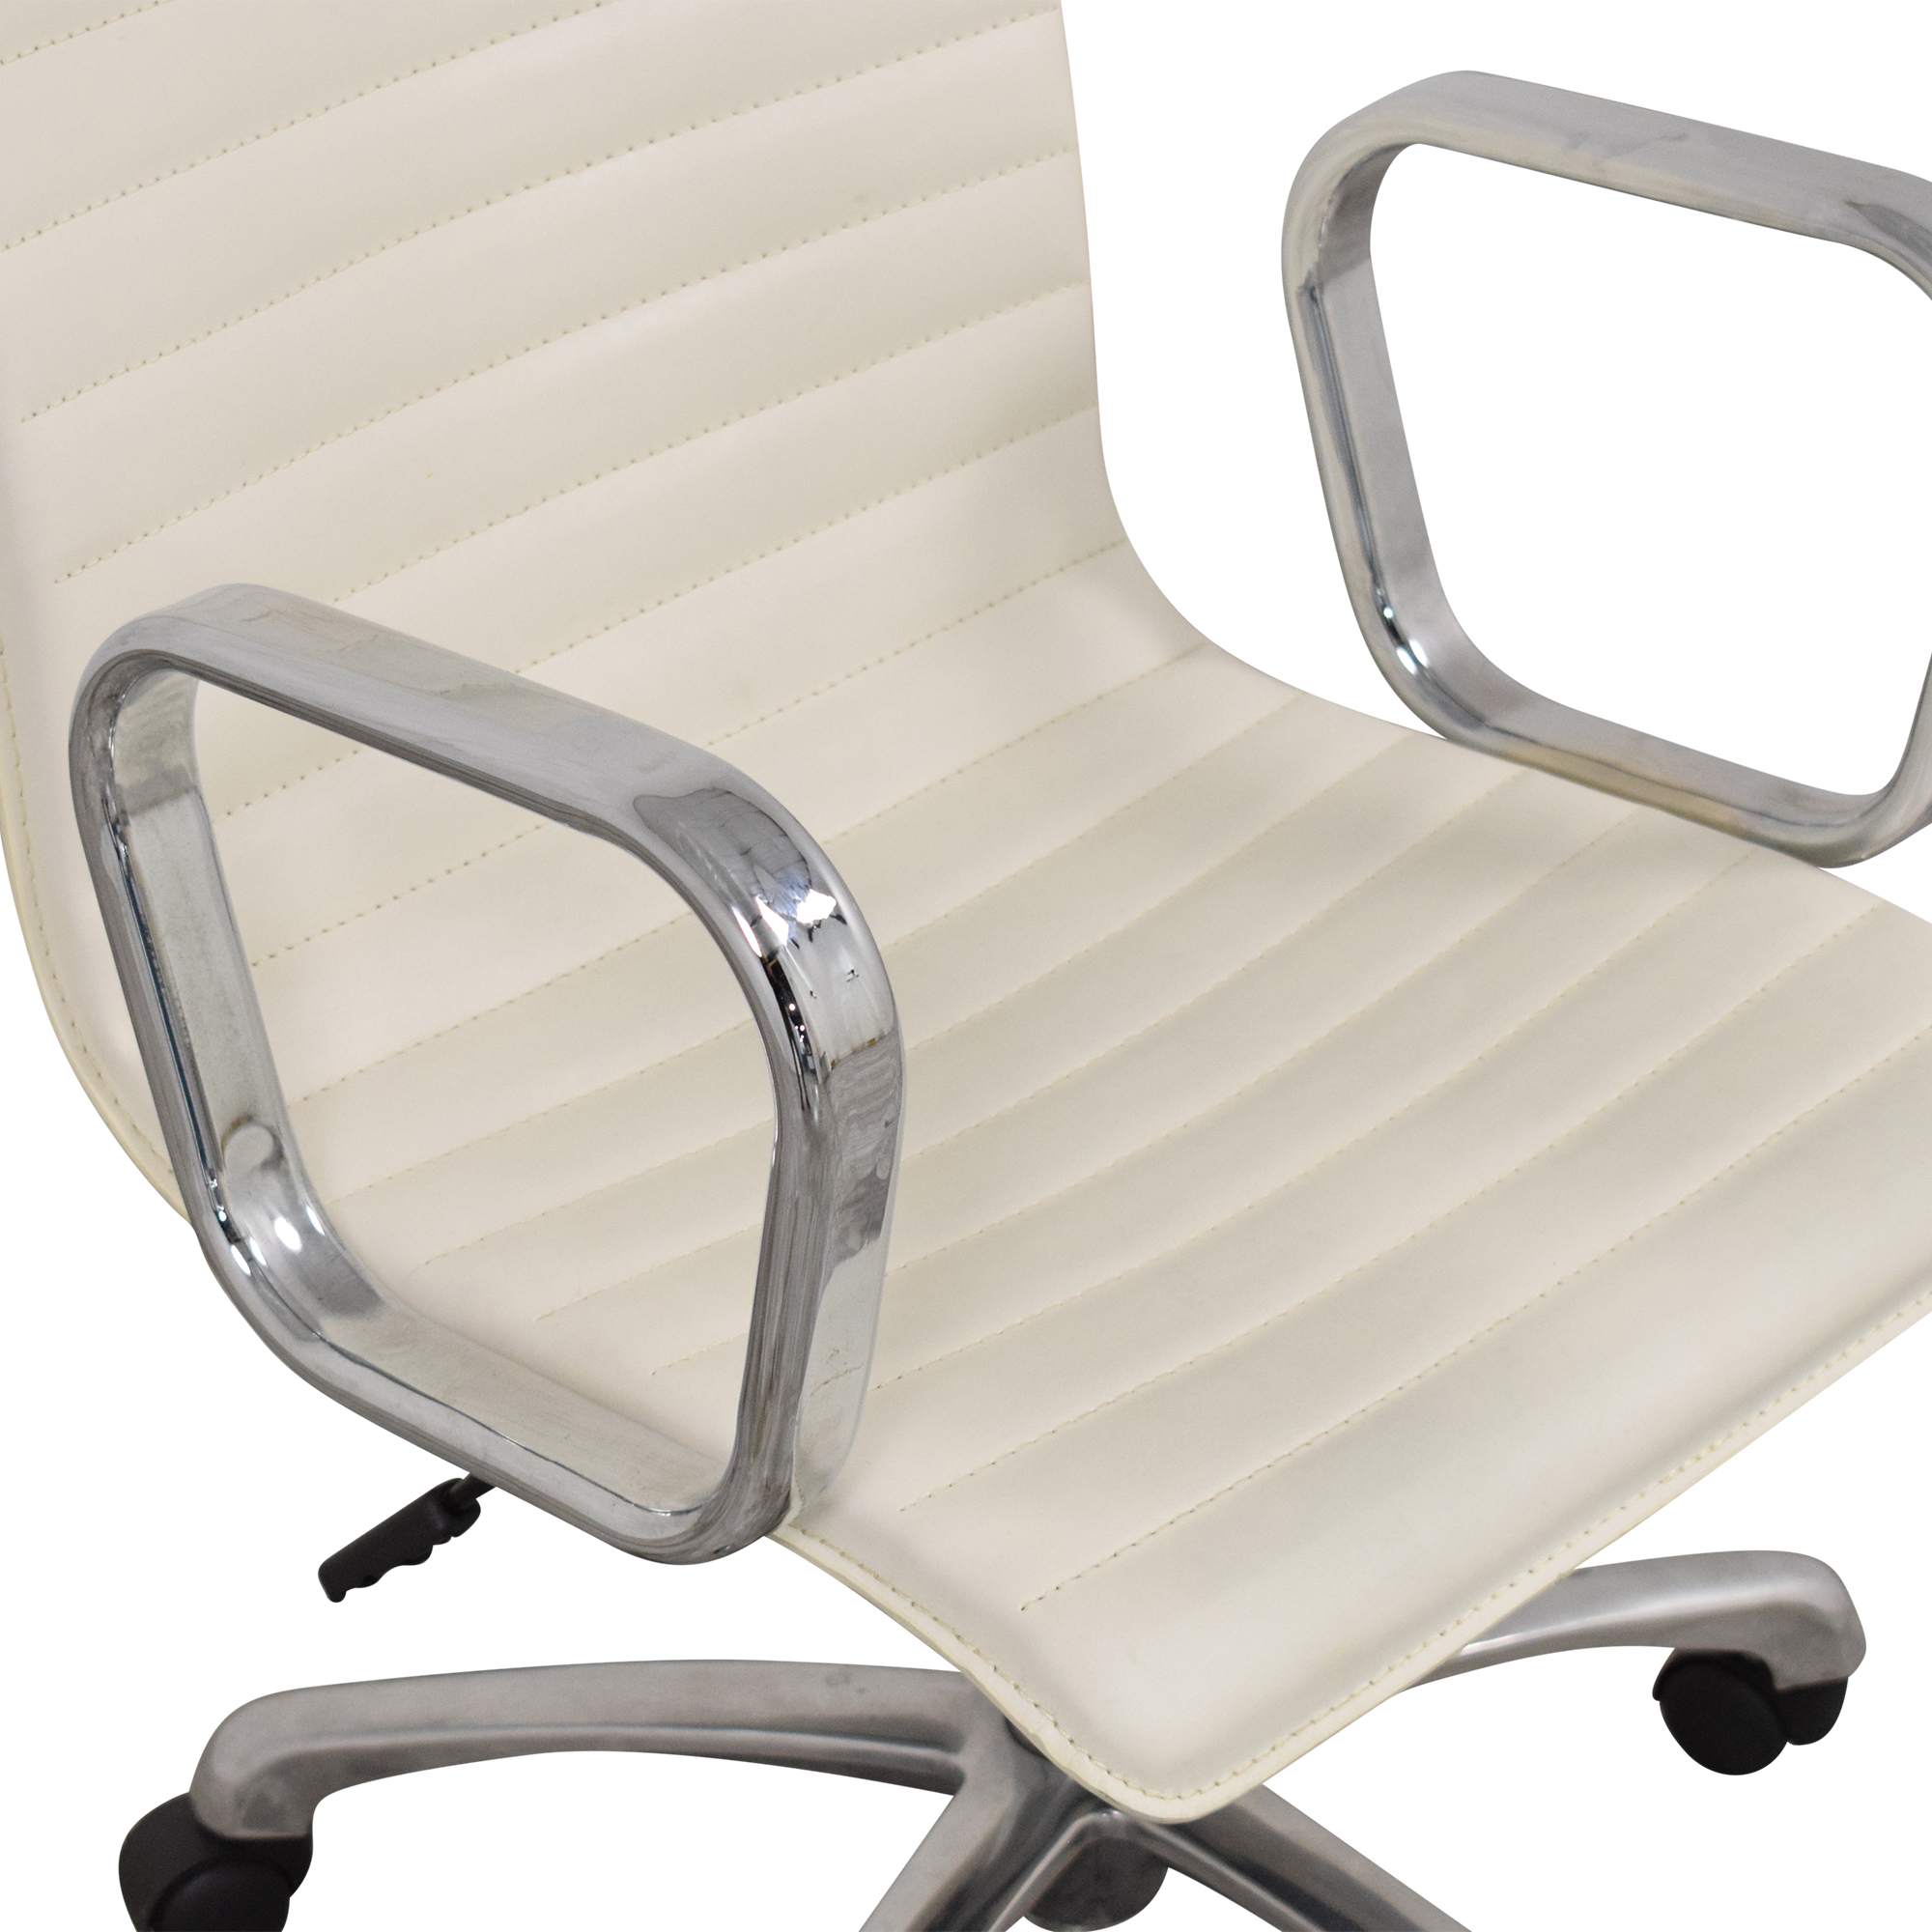 Crate & Barrel Crate & Barrel Ripple Ivory Office Chair with Chrome Base white